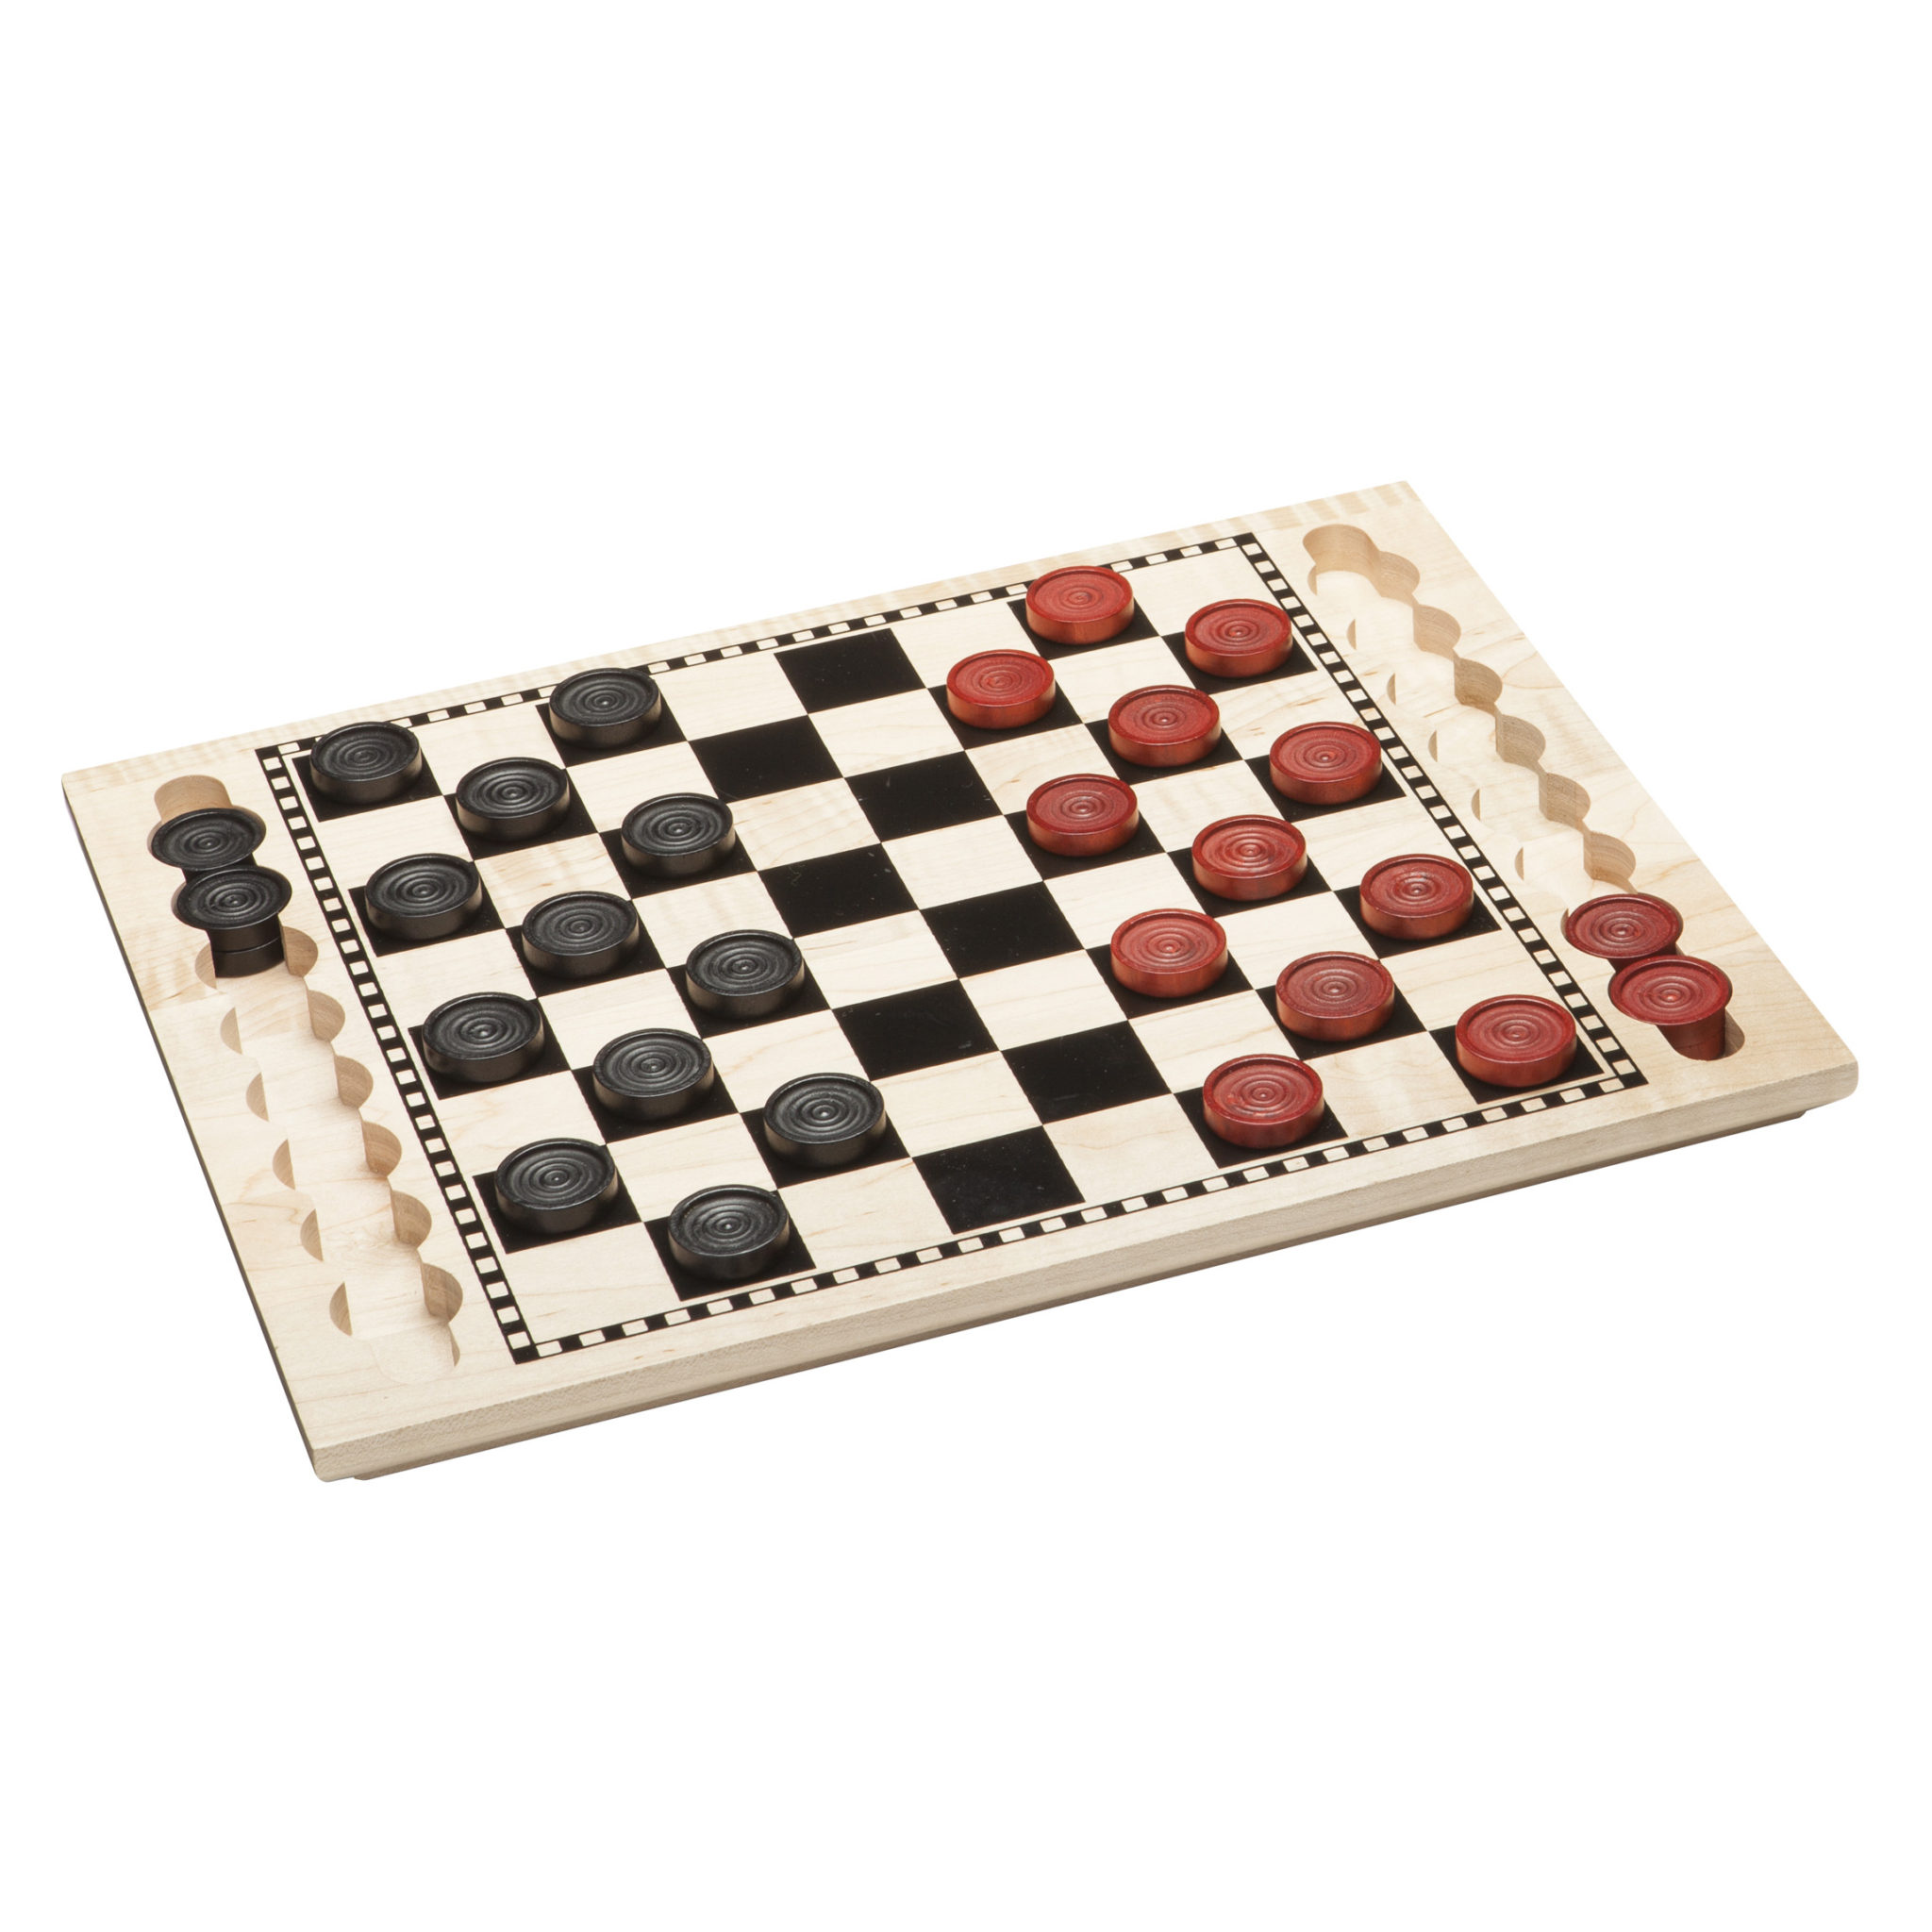 Amazon.com: Glass 3 in 1 Game Set Chess/Checkers ...